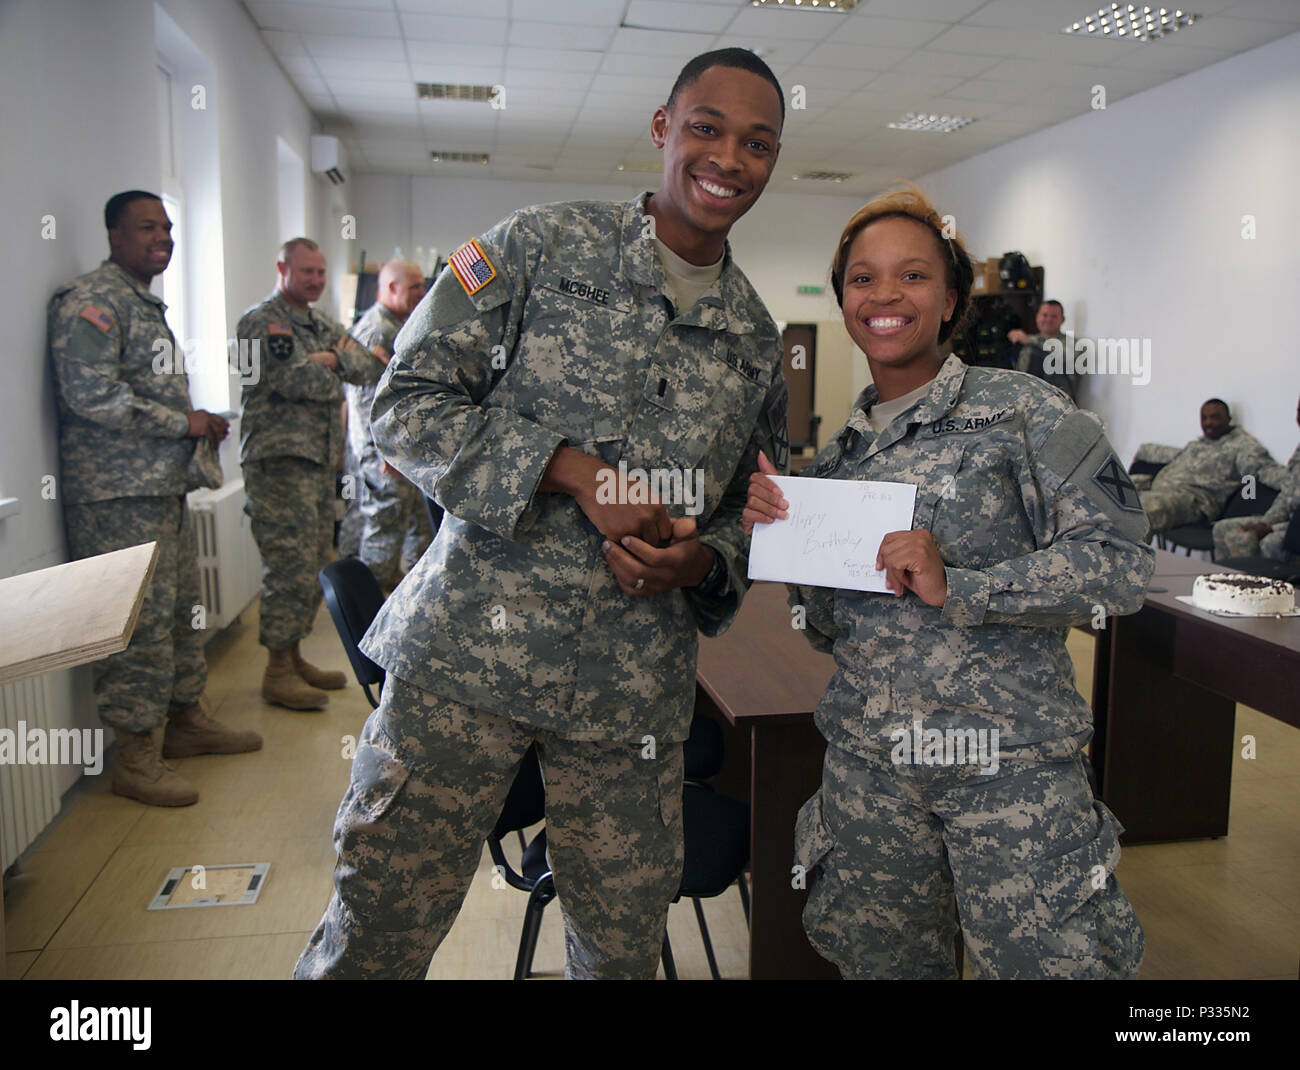 1st Lt Jeremy Mcghee 226th Manuver Enhancement Brigade Stands With Pfc Lakenya Hale 1165th Military Police Company During Her 19th Birthday Celebration At The Cincu Training Center Romania U S Army National Guard